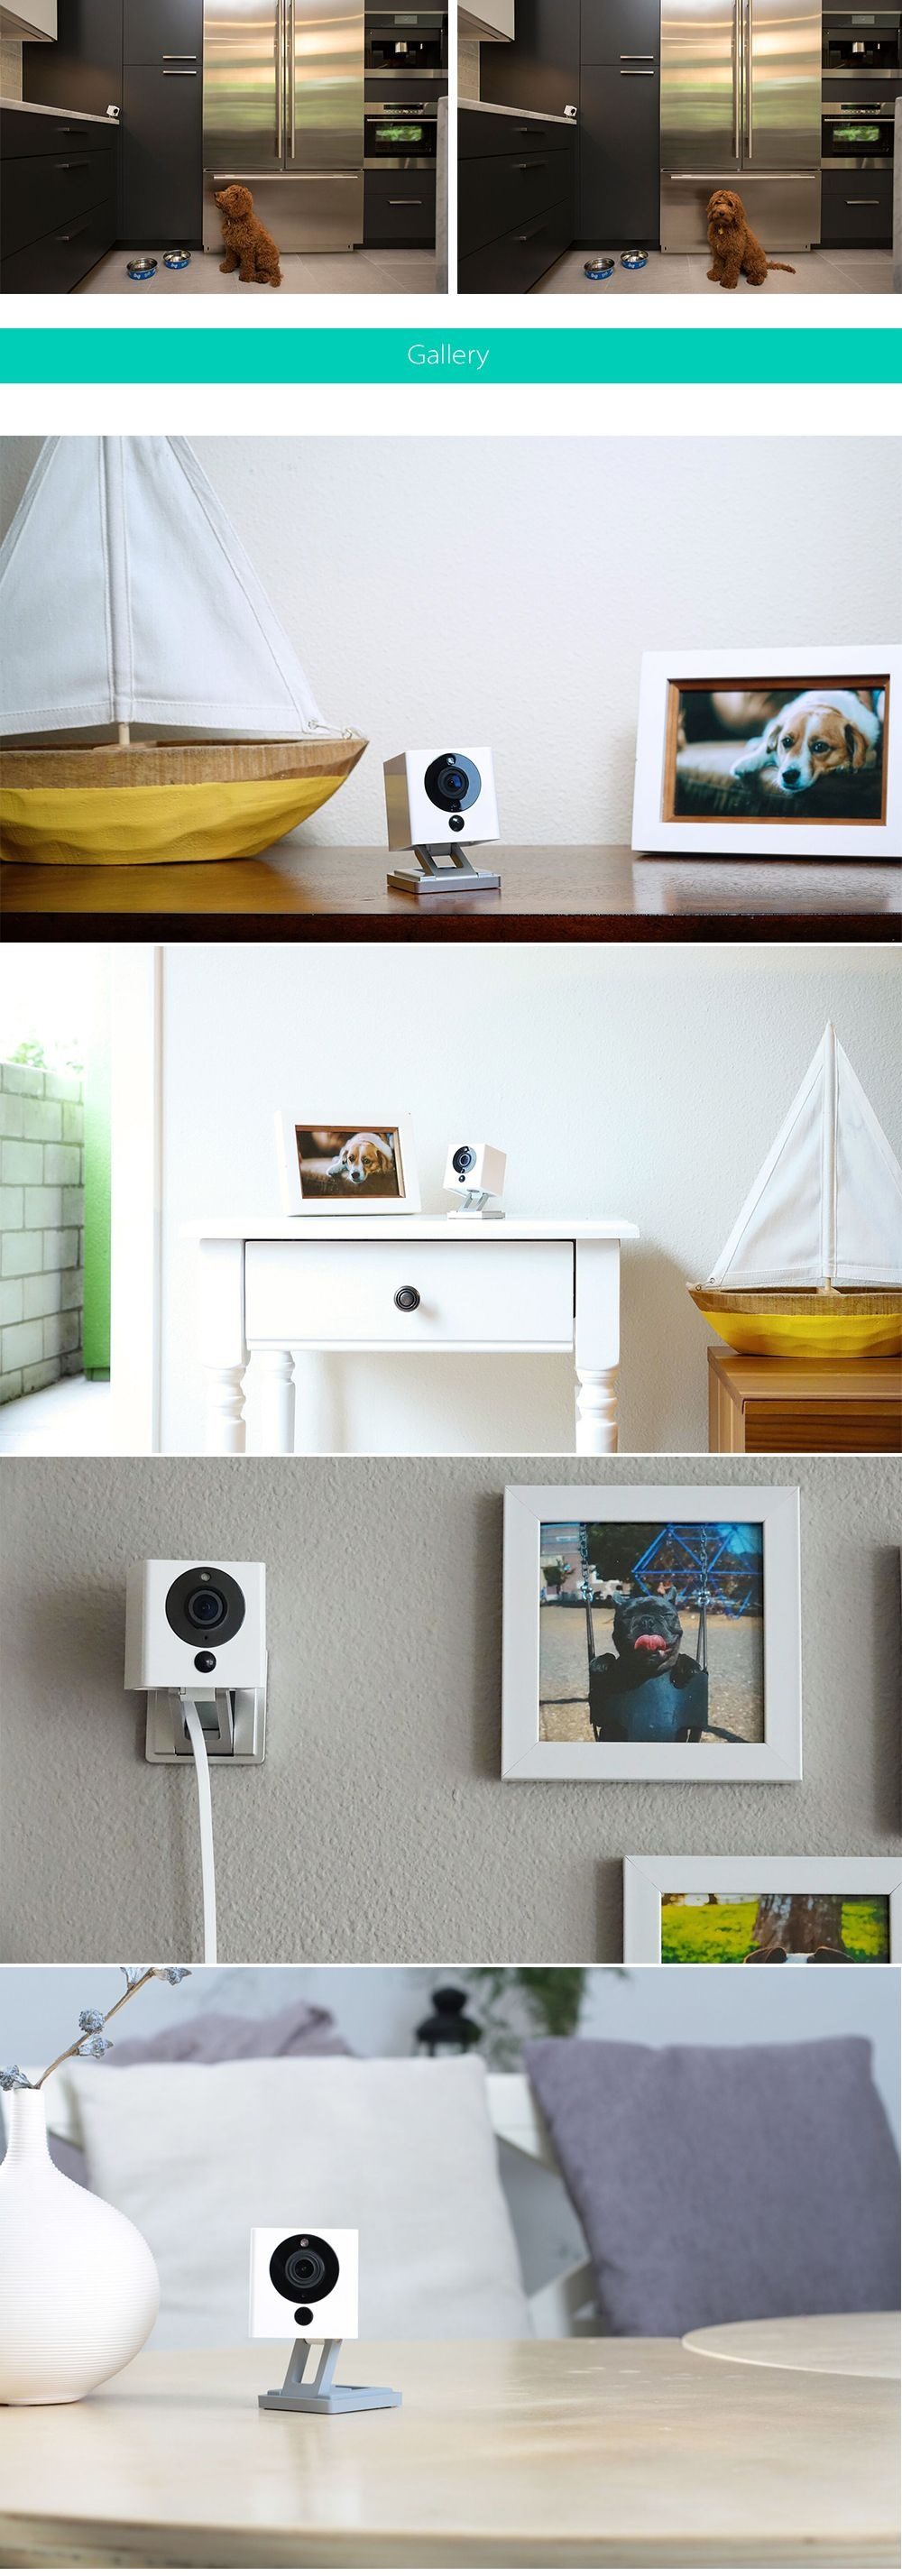 WyzeCam V2 Magnetic Smart Home Camera